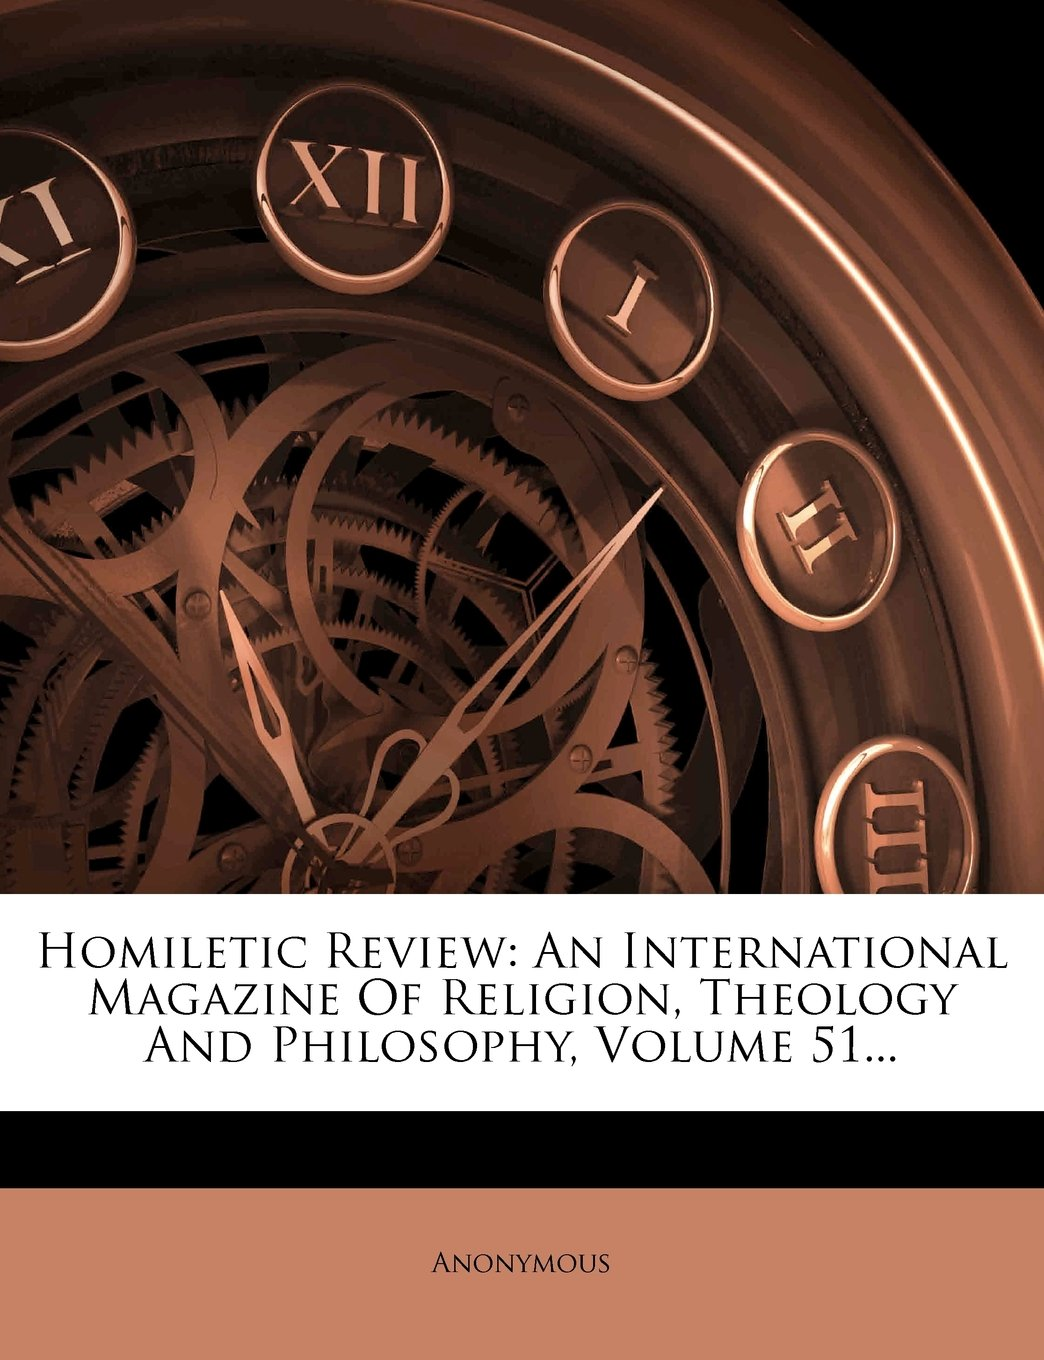 Homiletic Review: An International Magazine Of Religion, Theology And Philosophy, Volume 51... pdf